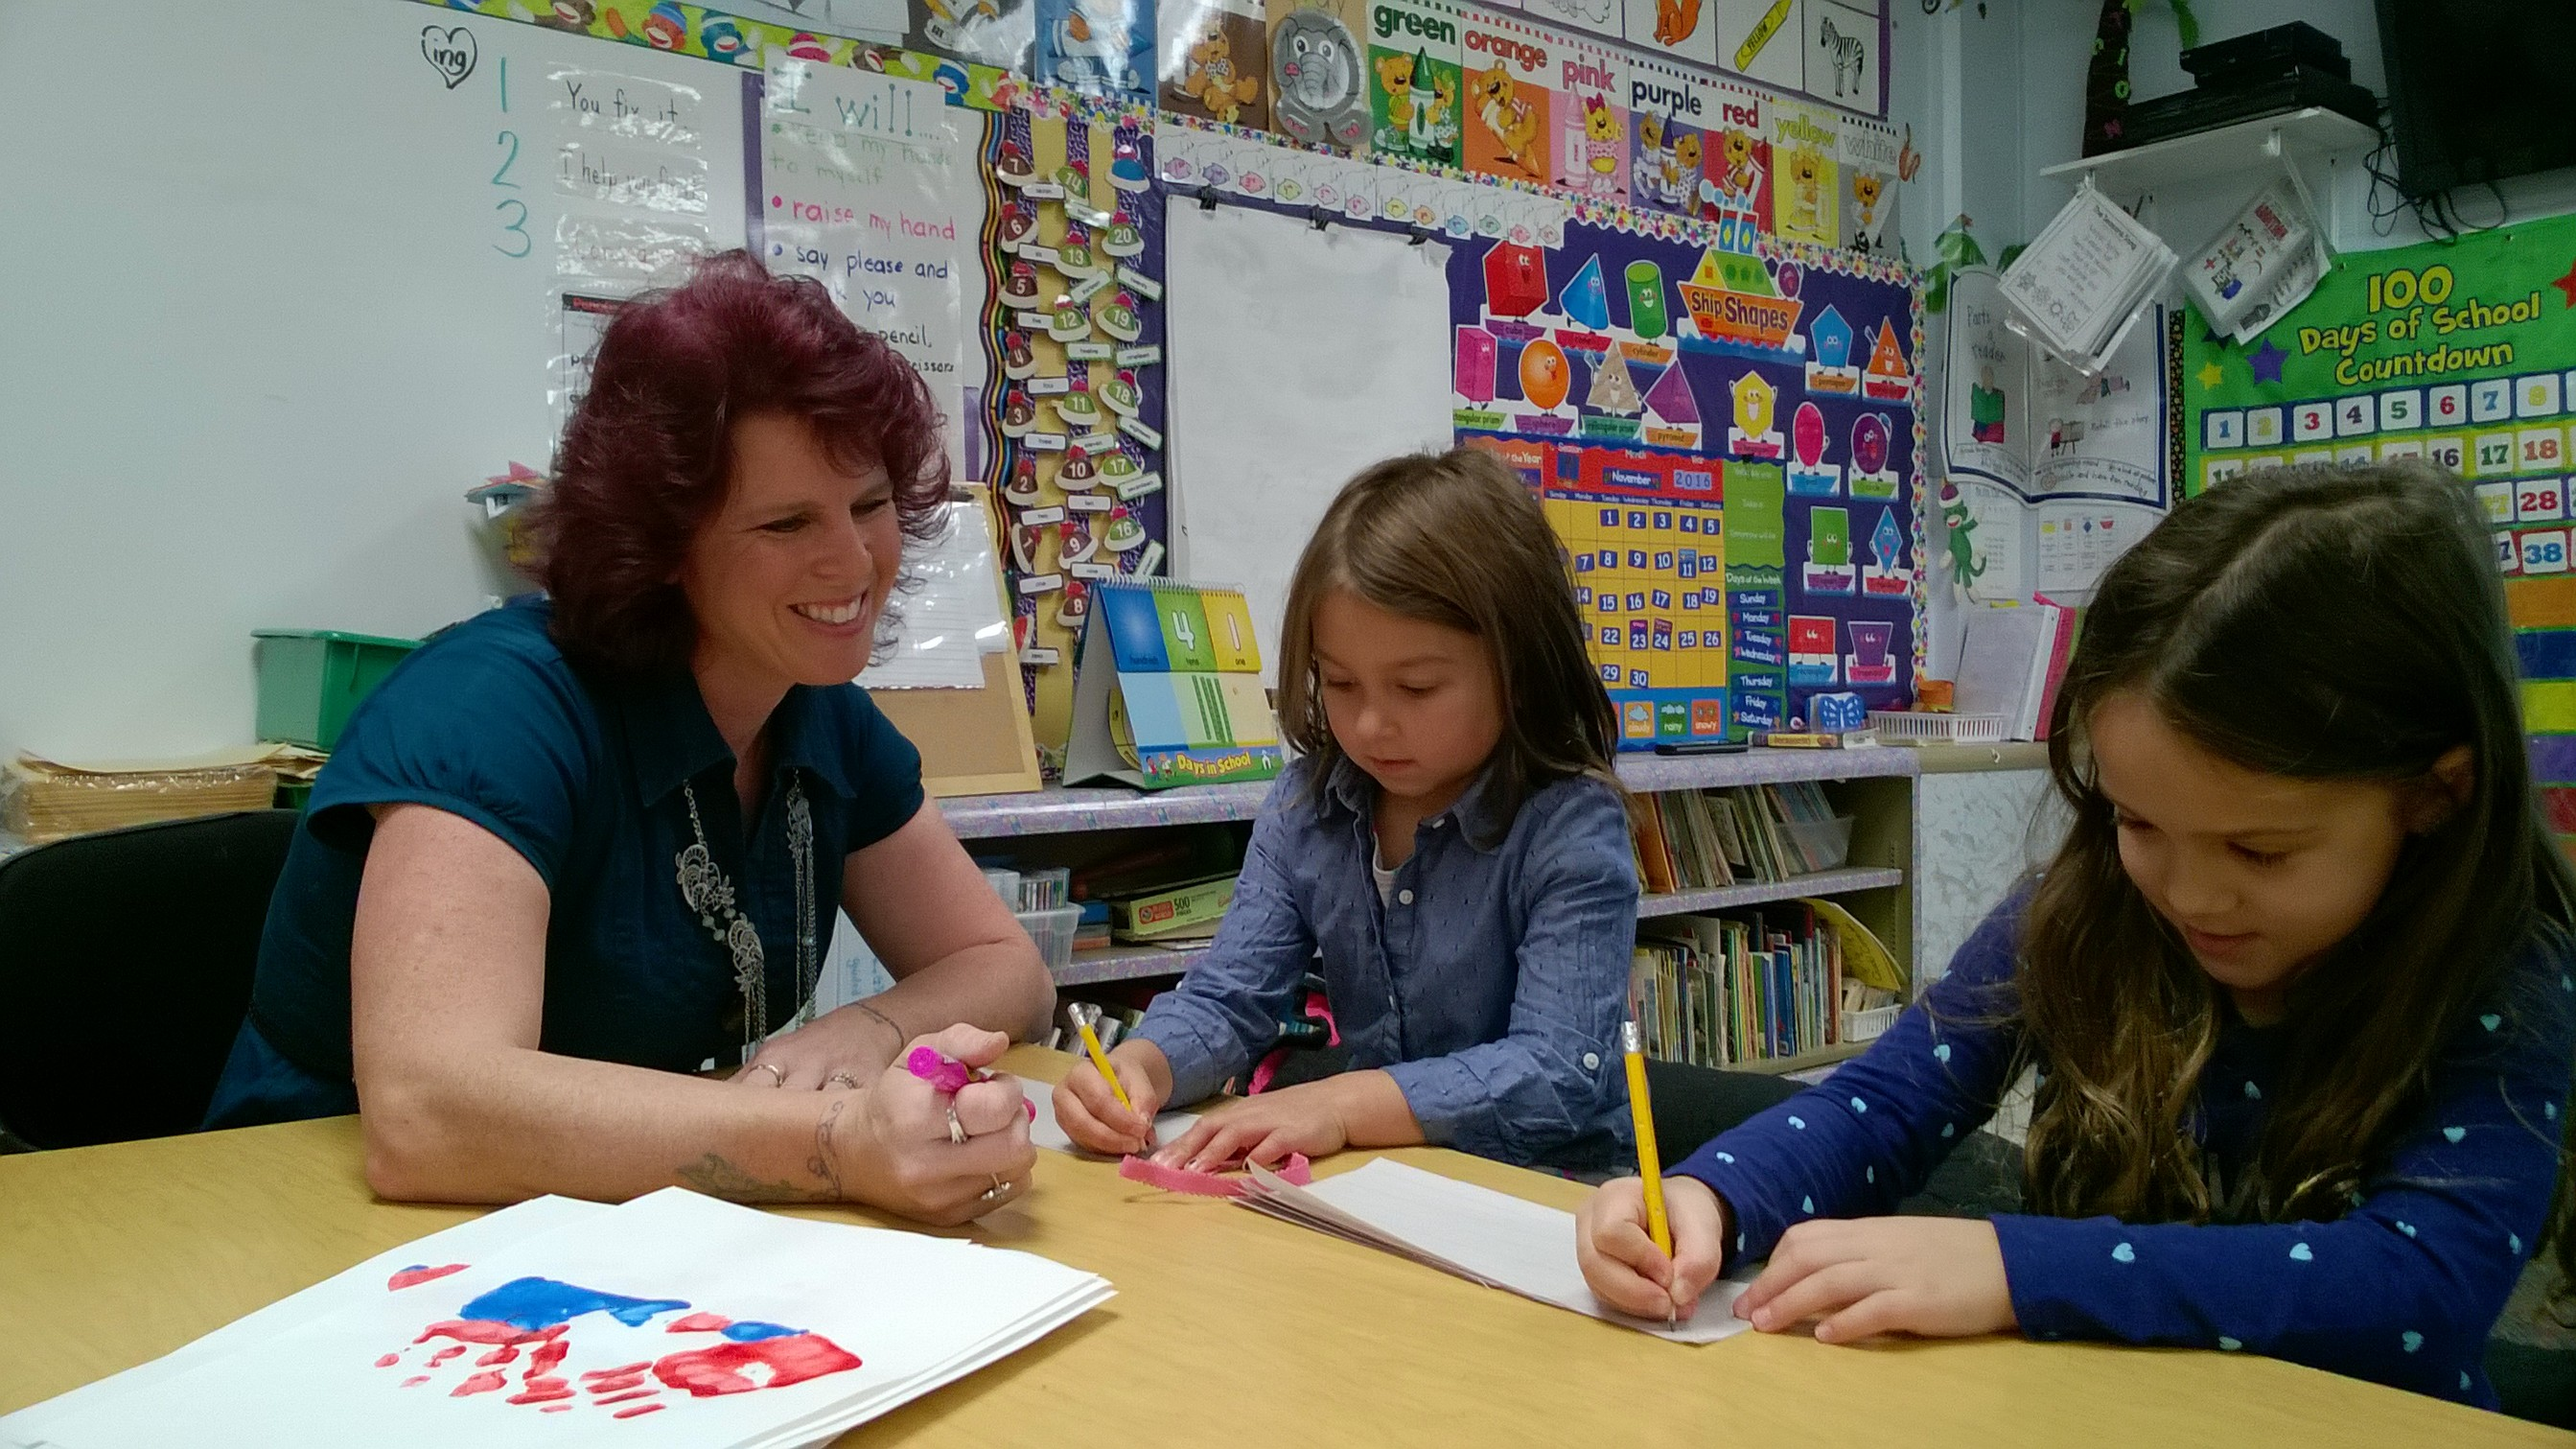 Royalton-Hartland Elementary School teacher Heather Pedini with two students, Taegan Stern and Sabrina Maline. (Provided photo)